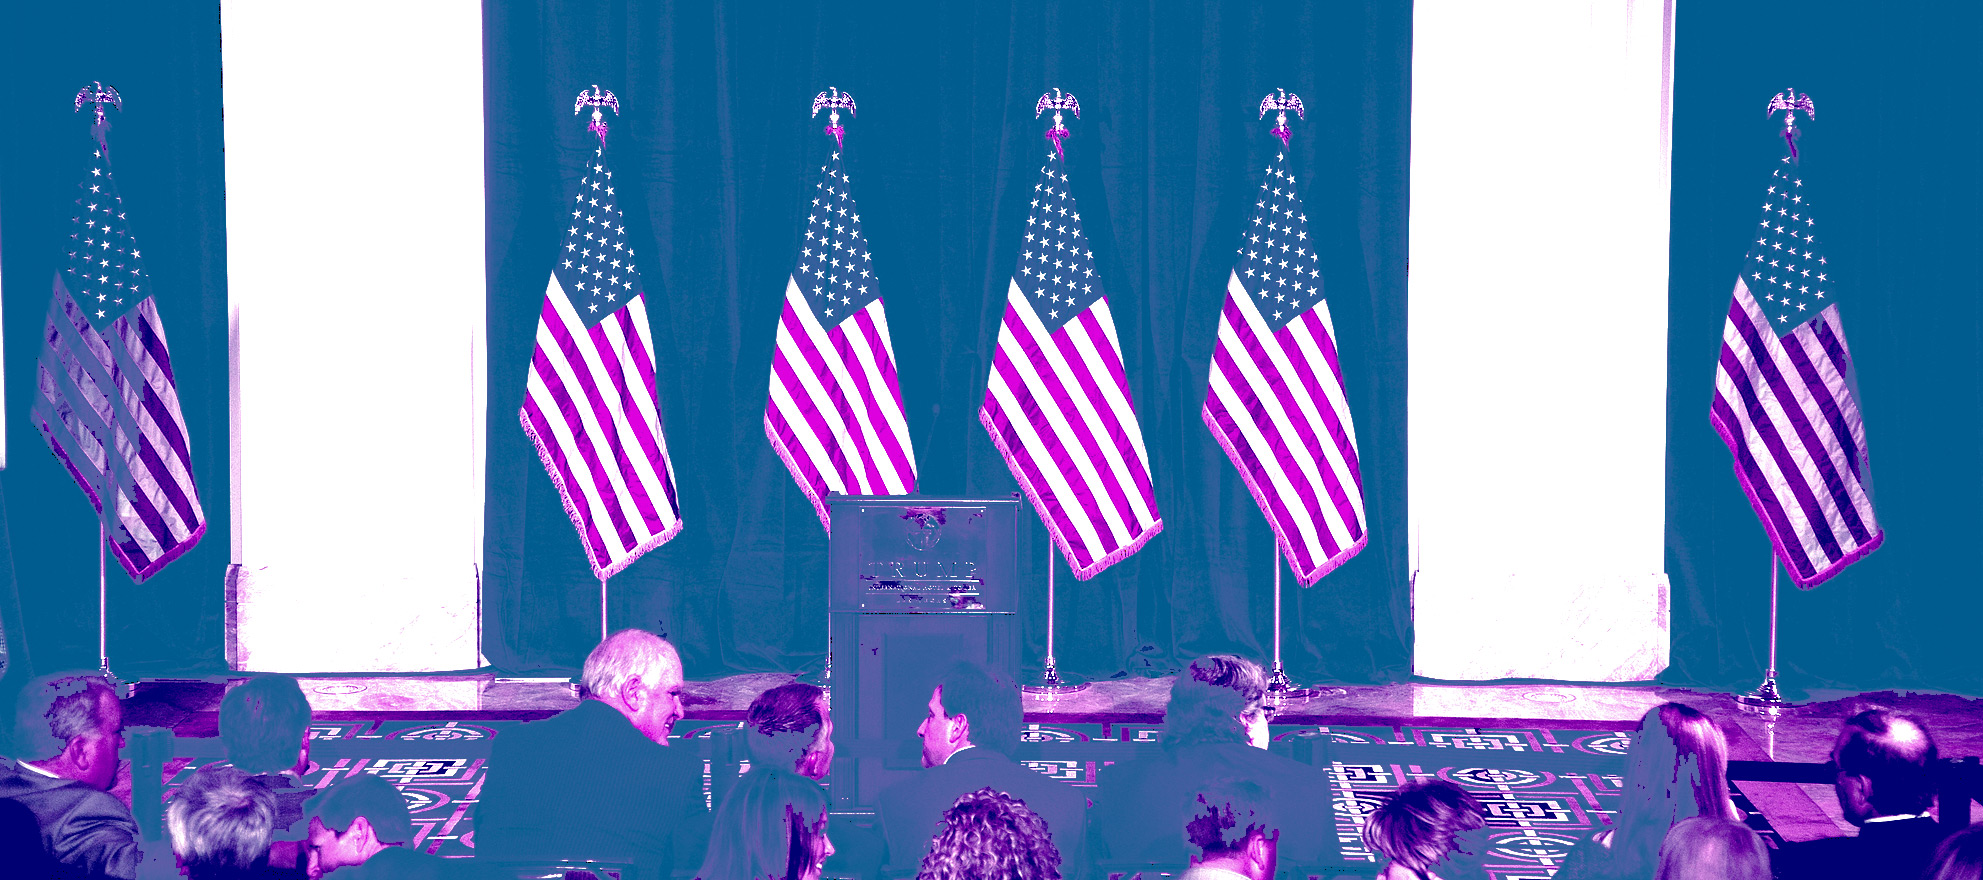 Hope, dream and fix it: What agents can learn from 2020 candidates